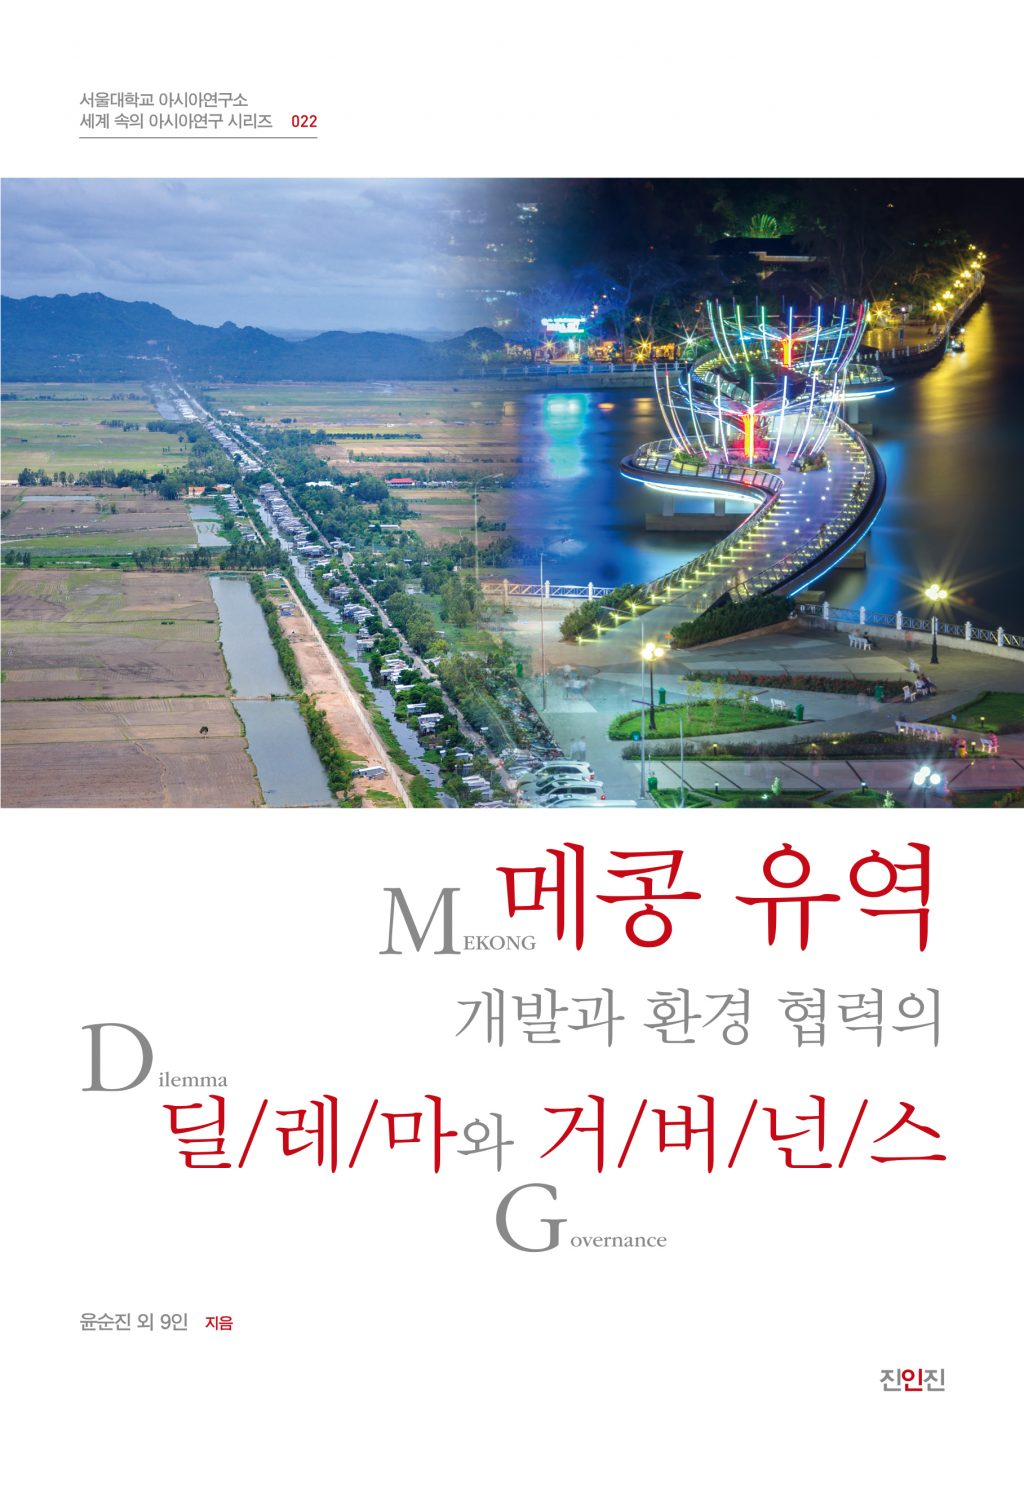 The Dilemma and Governance of Mekong Region Development and Environmental Cooperation